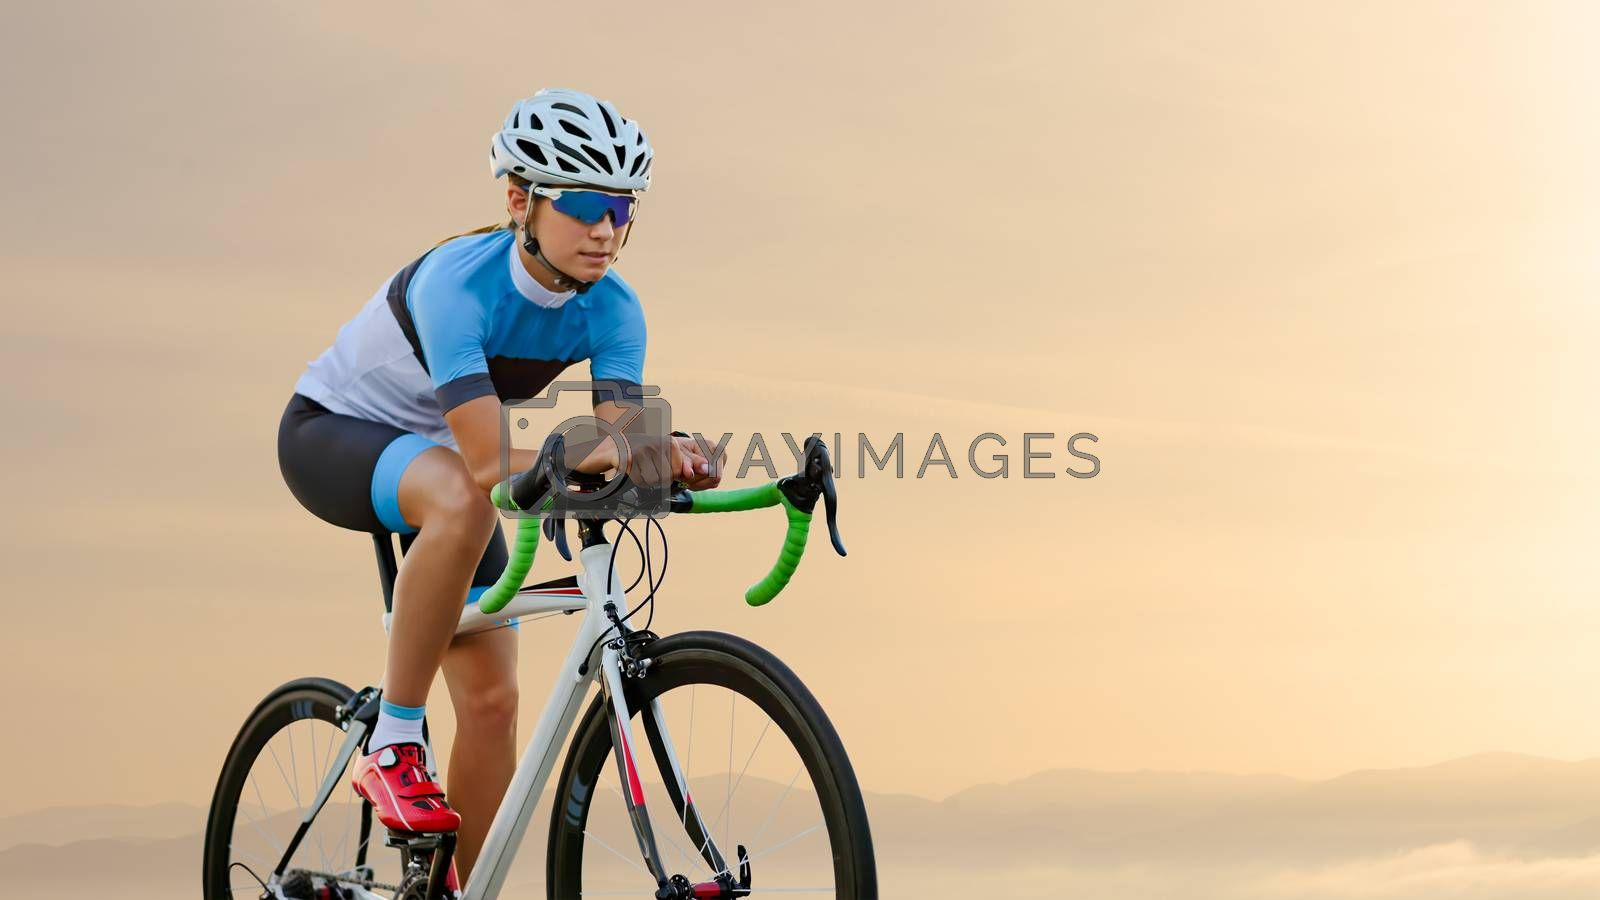 Young Woman Cyclist Riding Road Bike on the Road in the Beautiful Mountains at Sunset. Adventure, Travel, Healthy Lifestyle and Sport Concept.